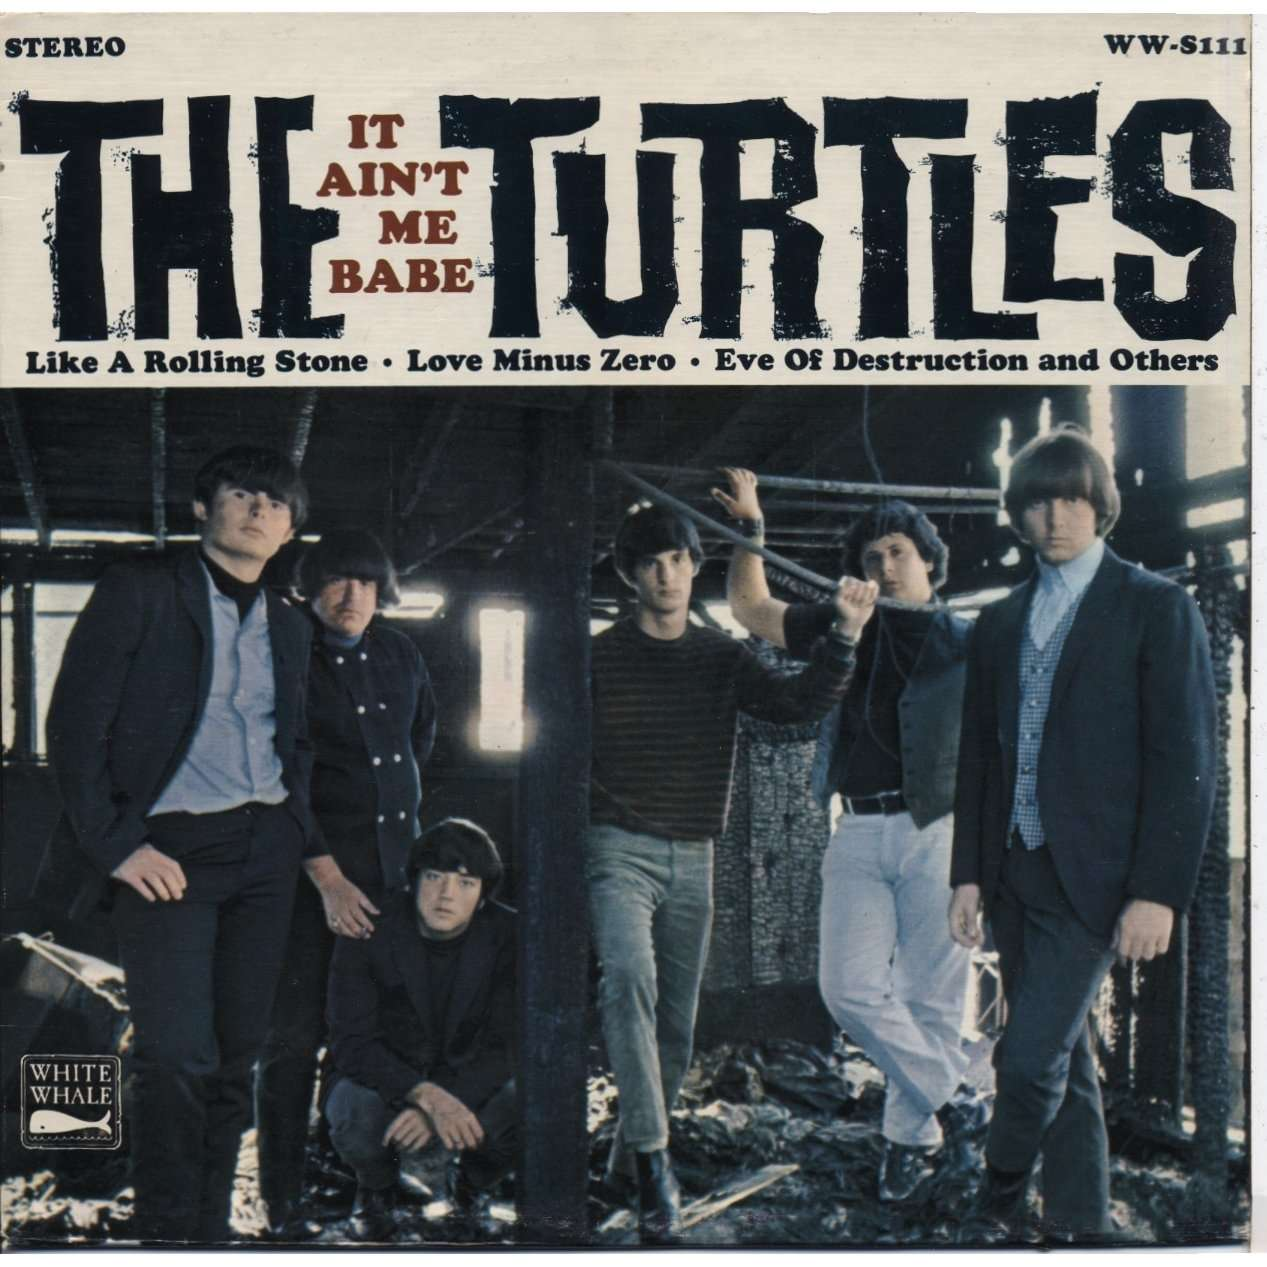 The Turtles It Aint Me Babe White Whale 1965 Flo